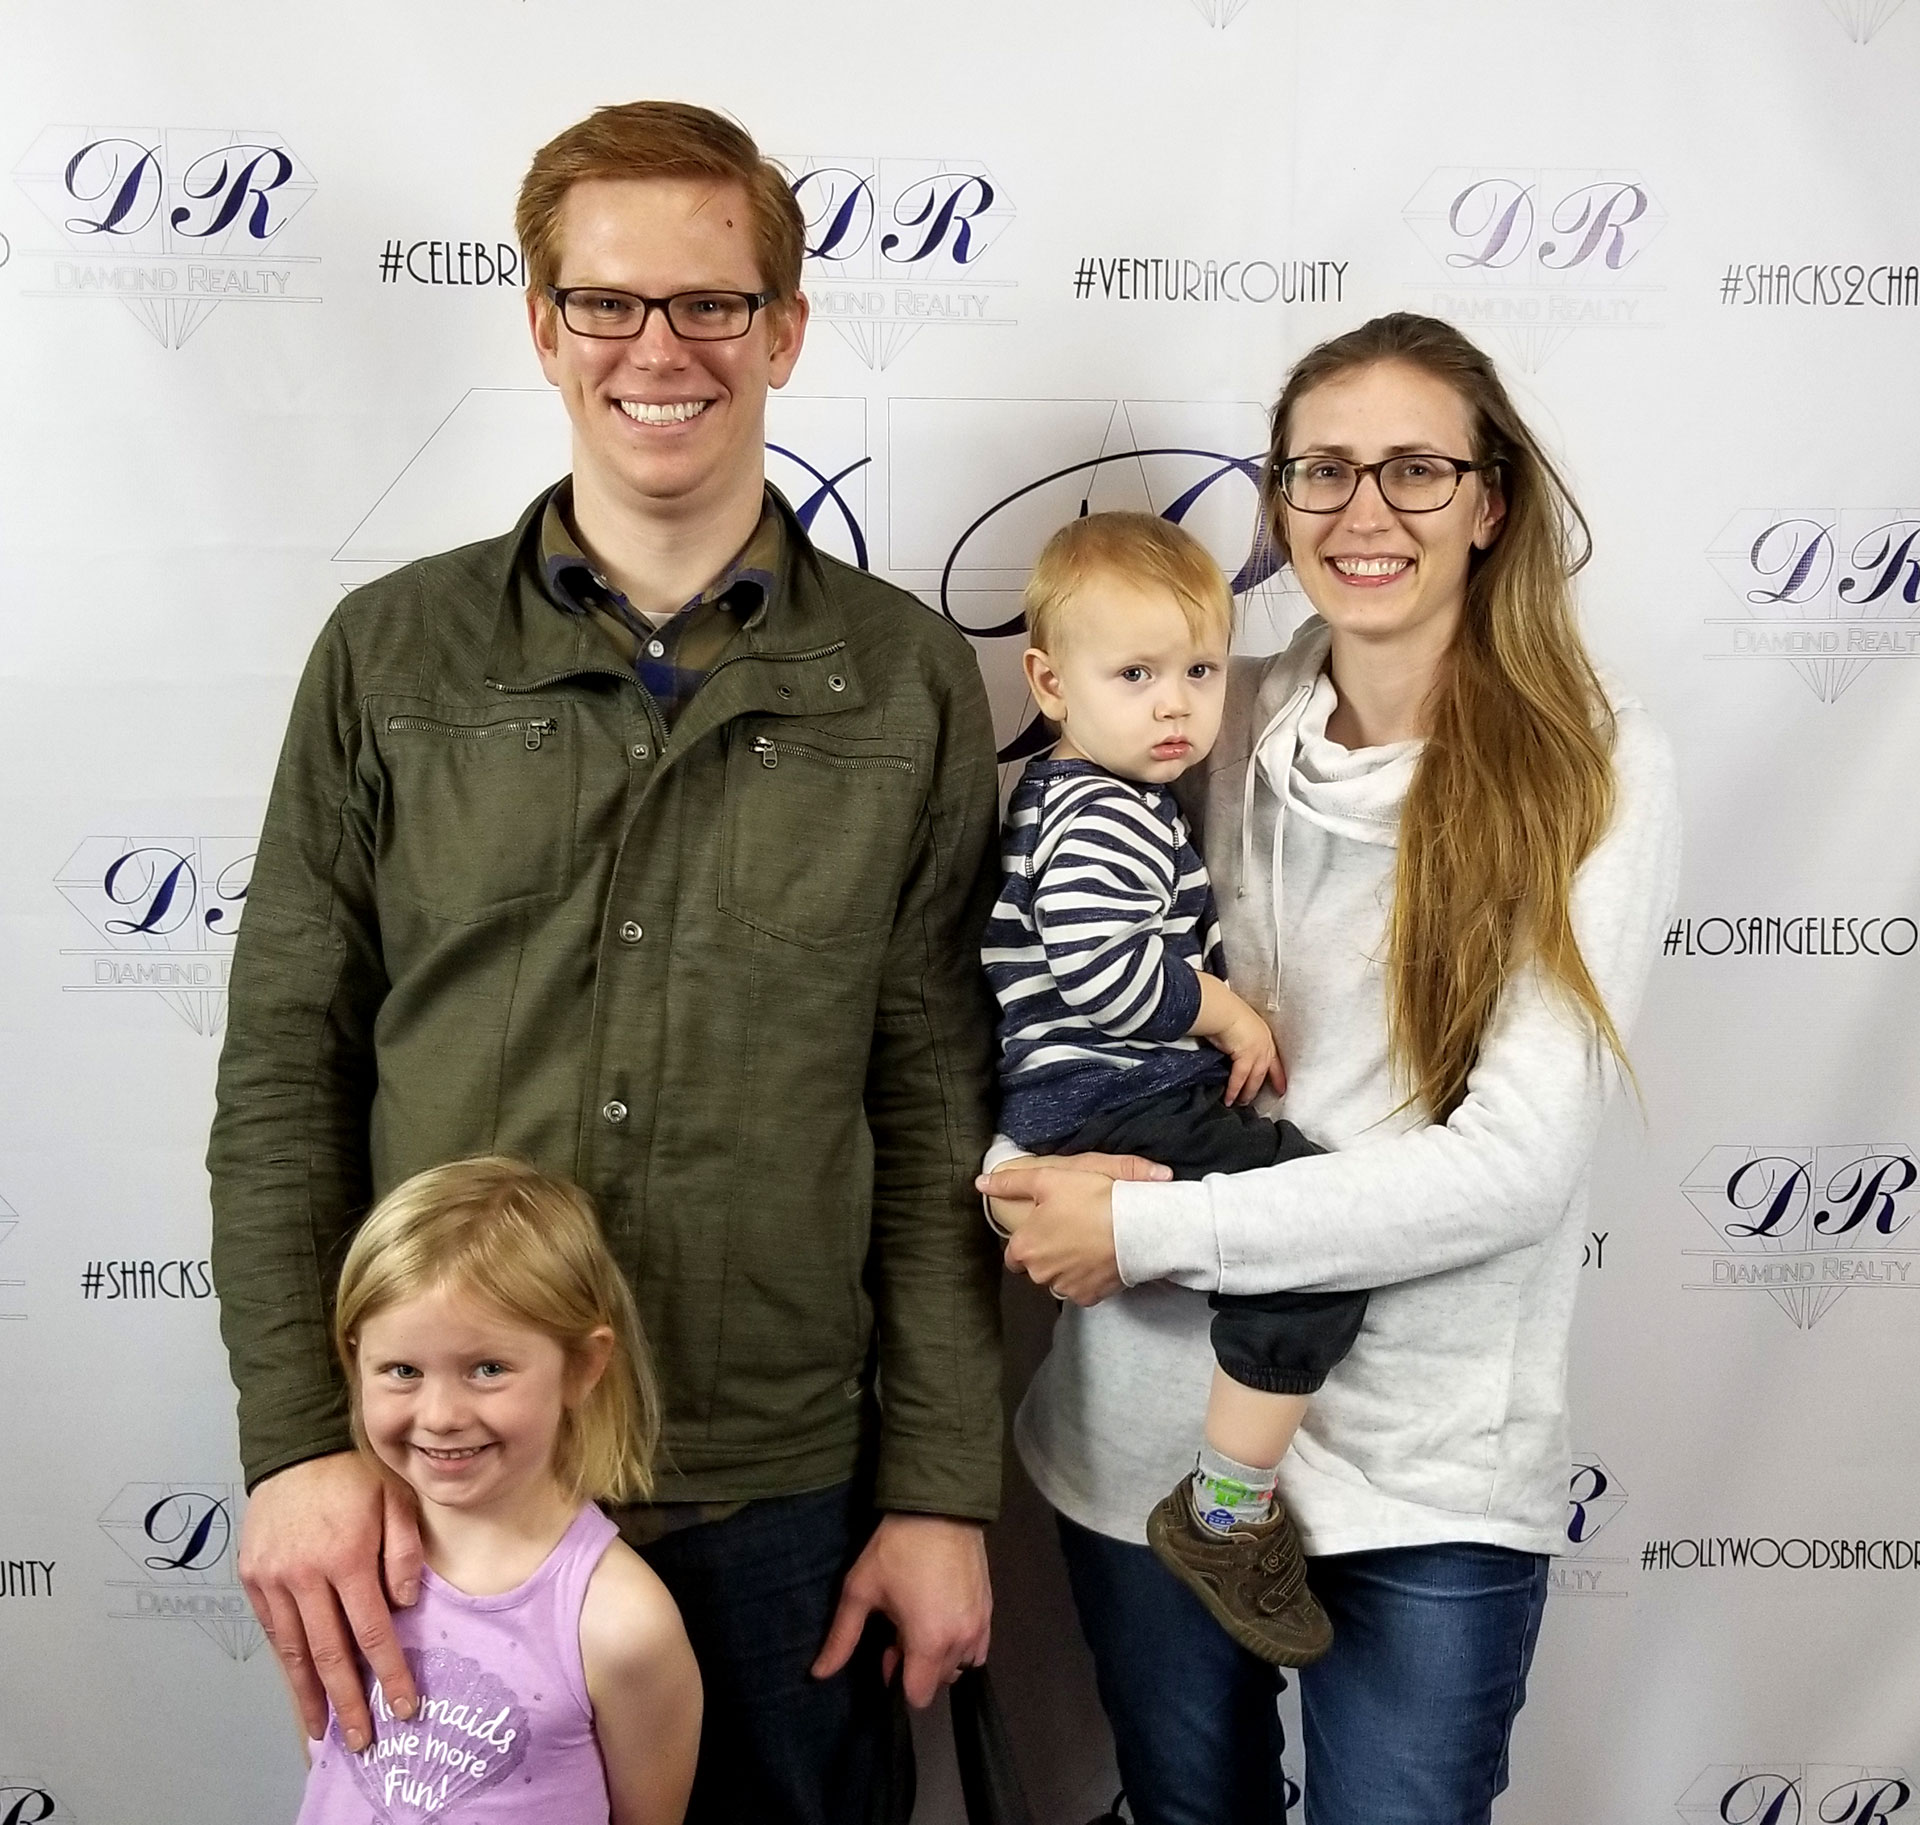 The Peterson Family at Diamond Realty in Fillmore